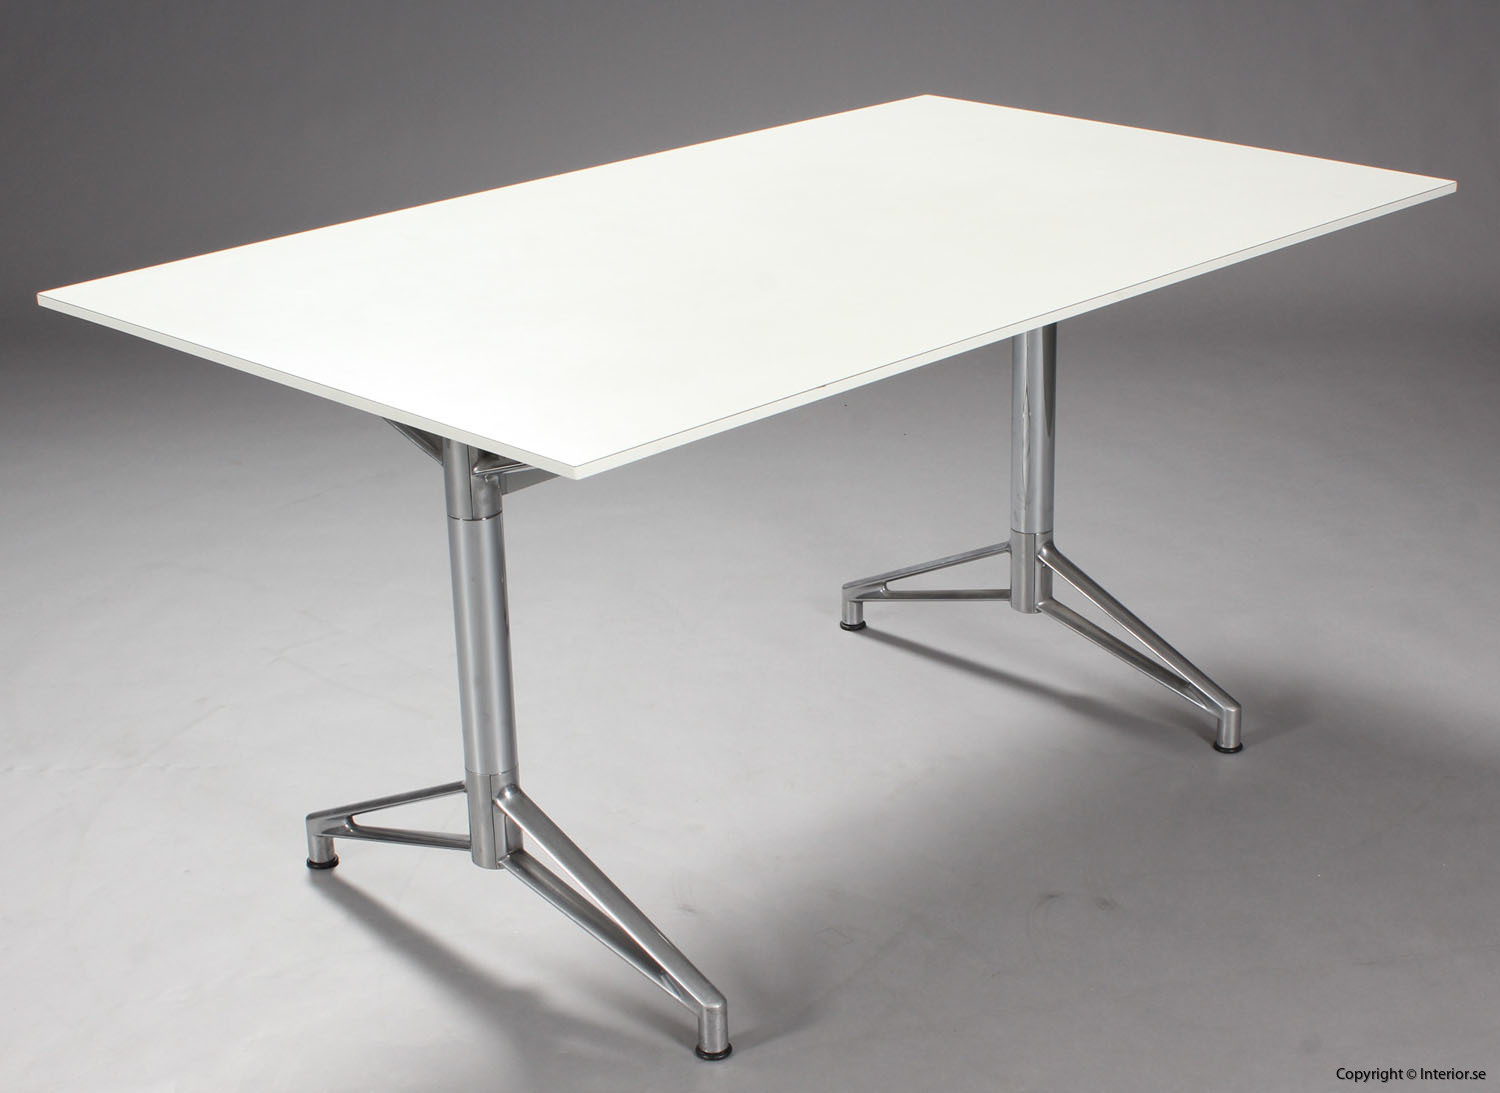 Konferensbord, Kusch & Co One Desk - 200 x 90 cm konferenztisch conference table 6